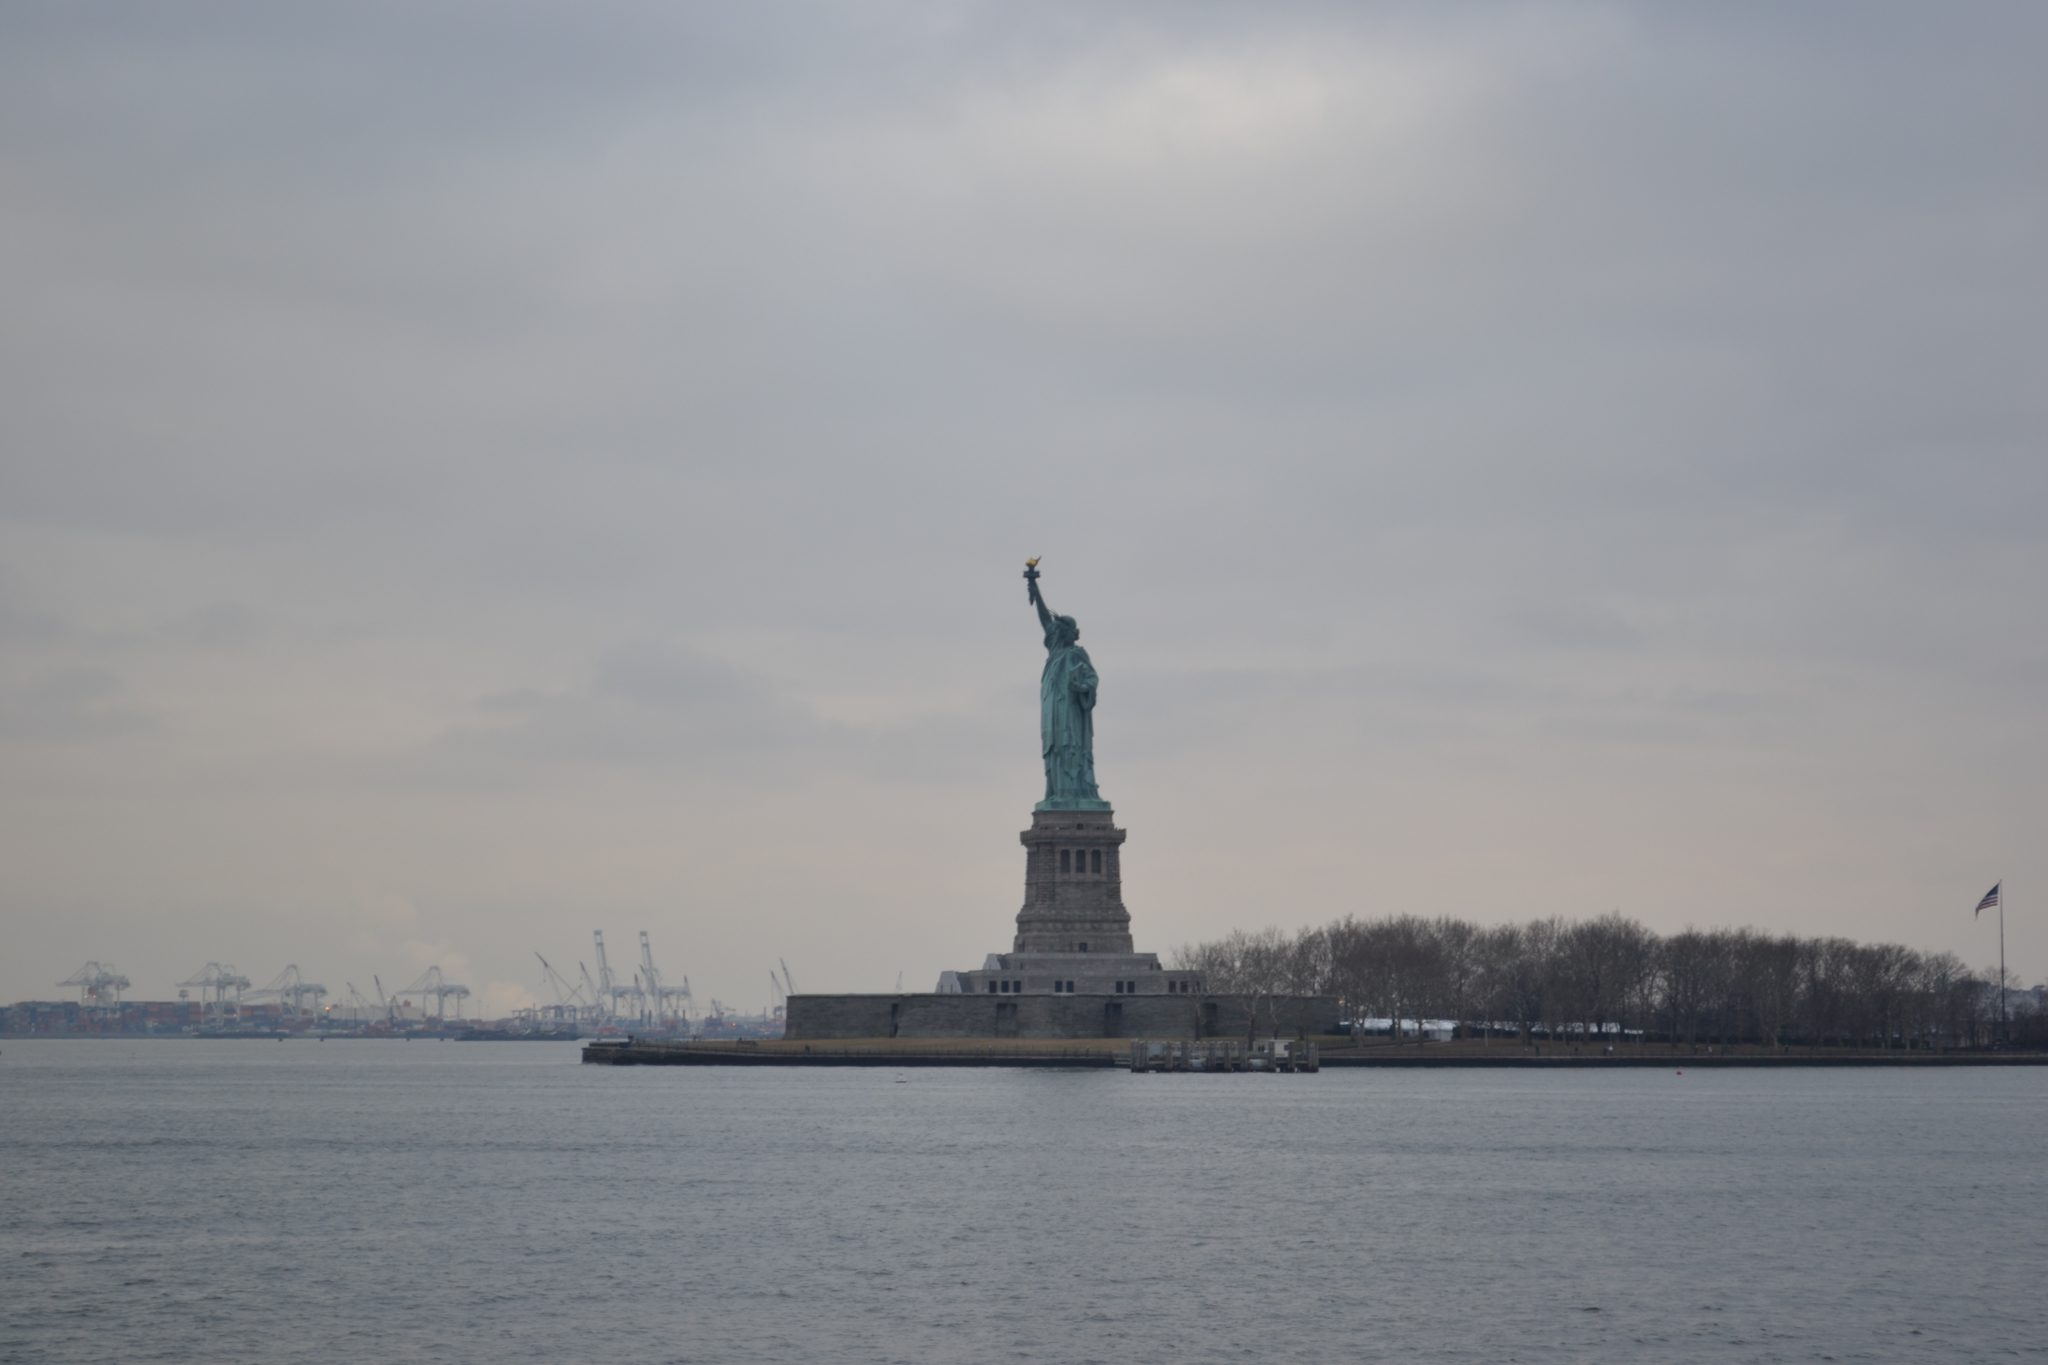 Travel Diary: Eine Woche in New York | USA - dsc 0416